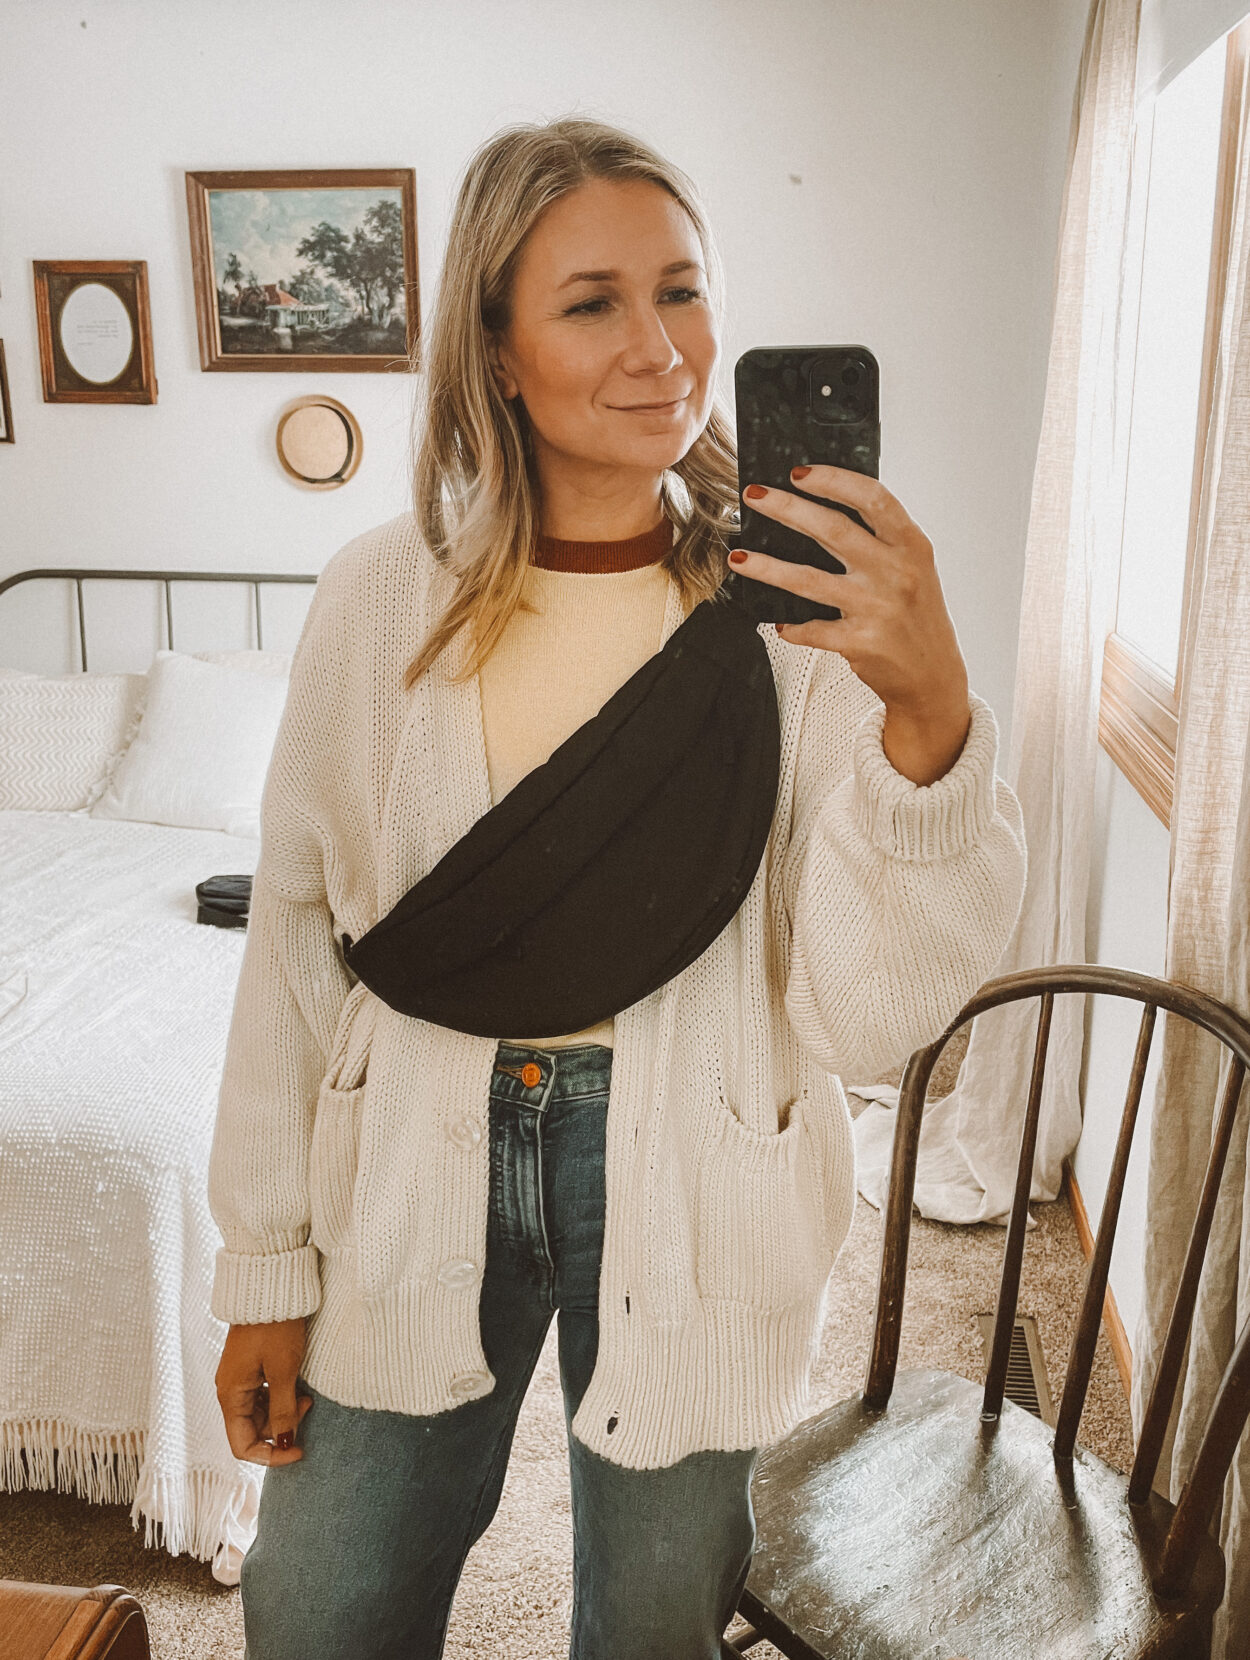 fanny pack review, everlane woven crossbody